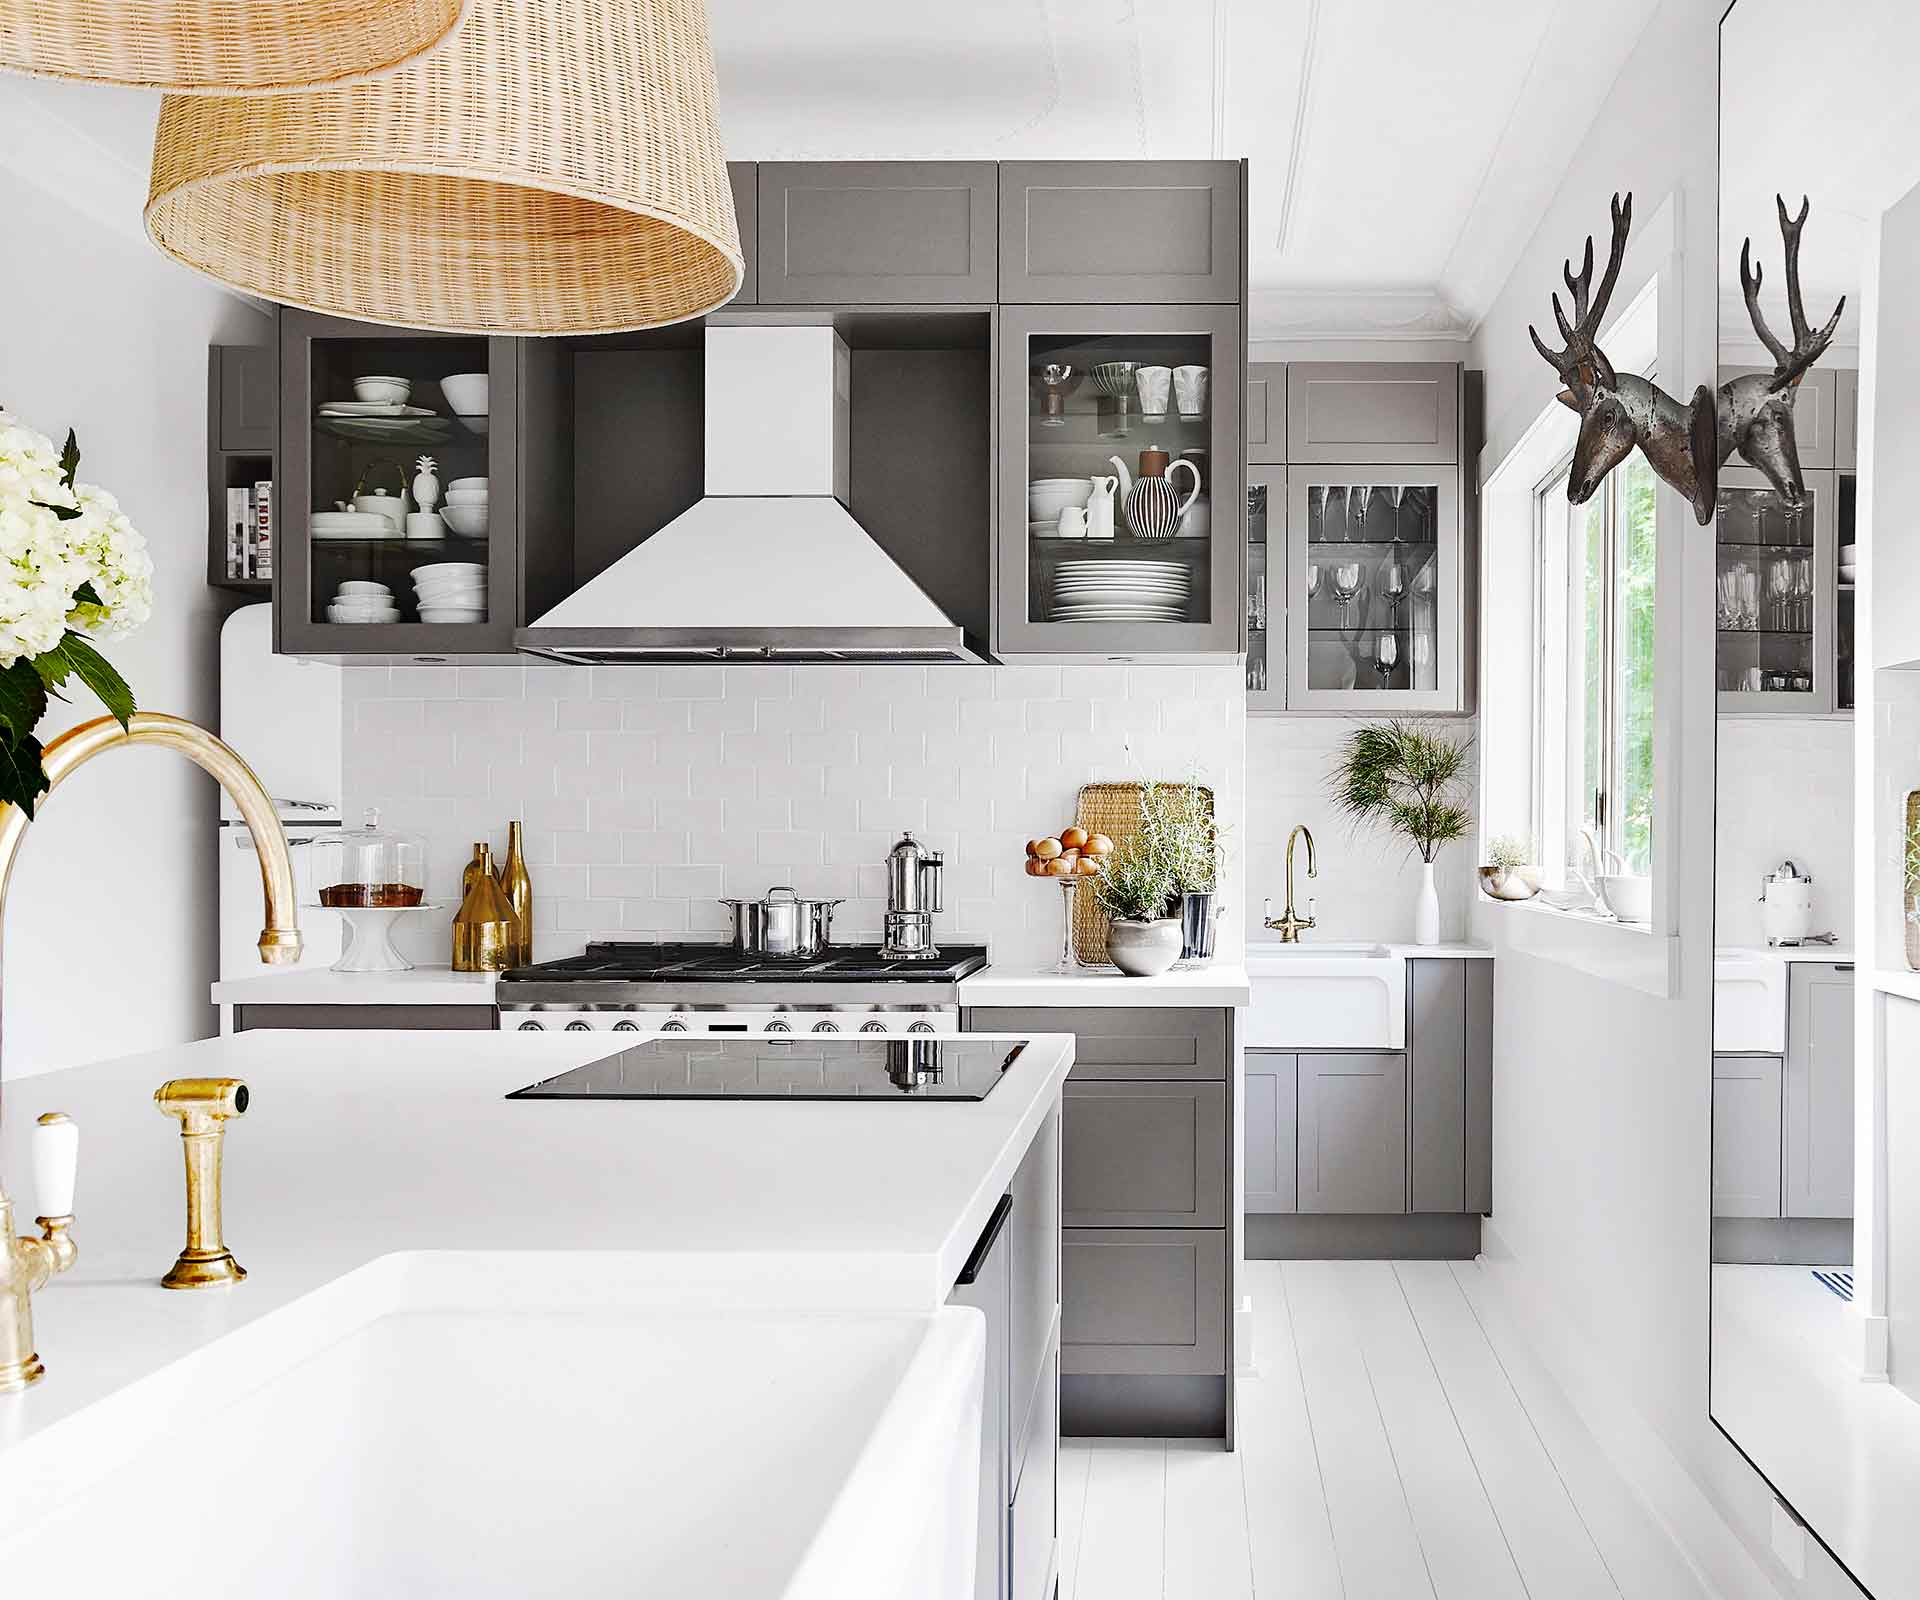 13 butler's pantry design ideas that are perfect for any home | Homes To Love